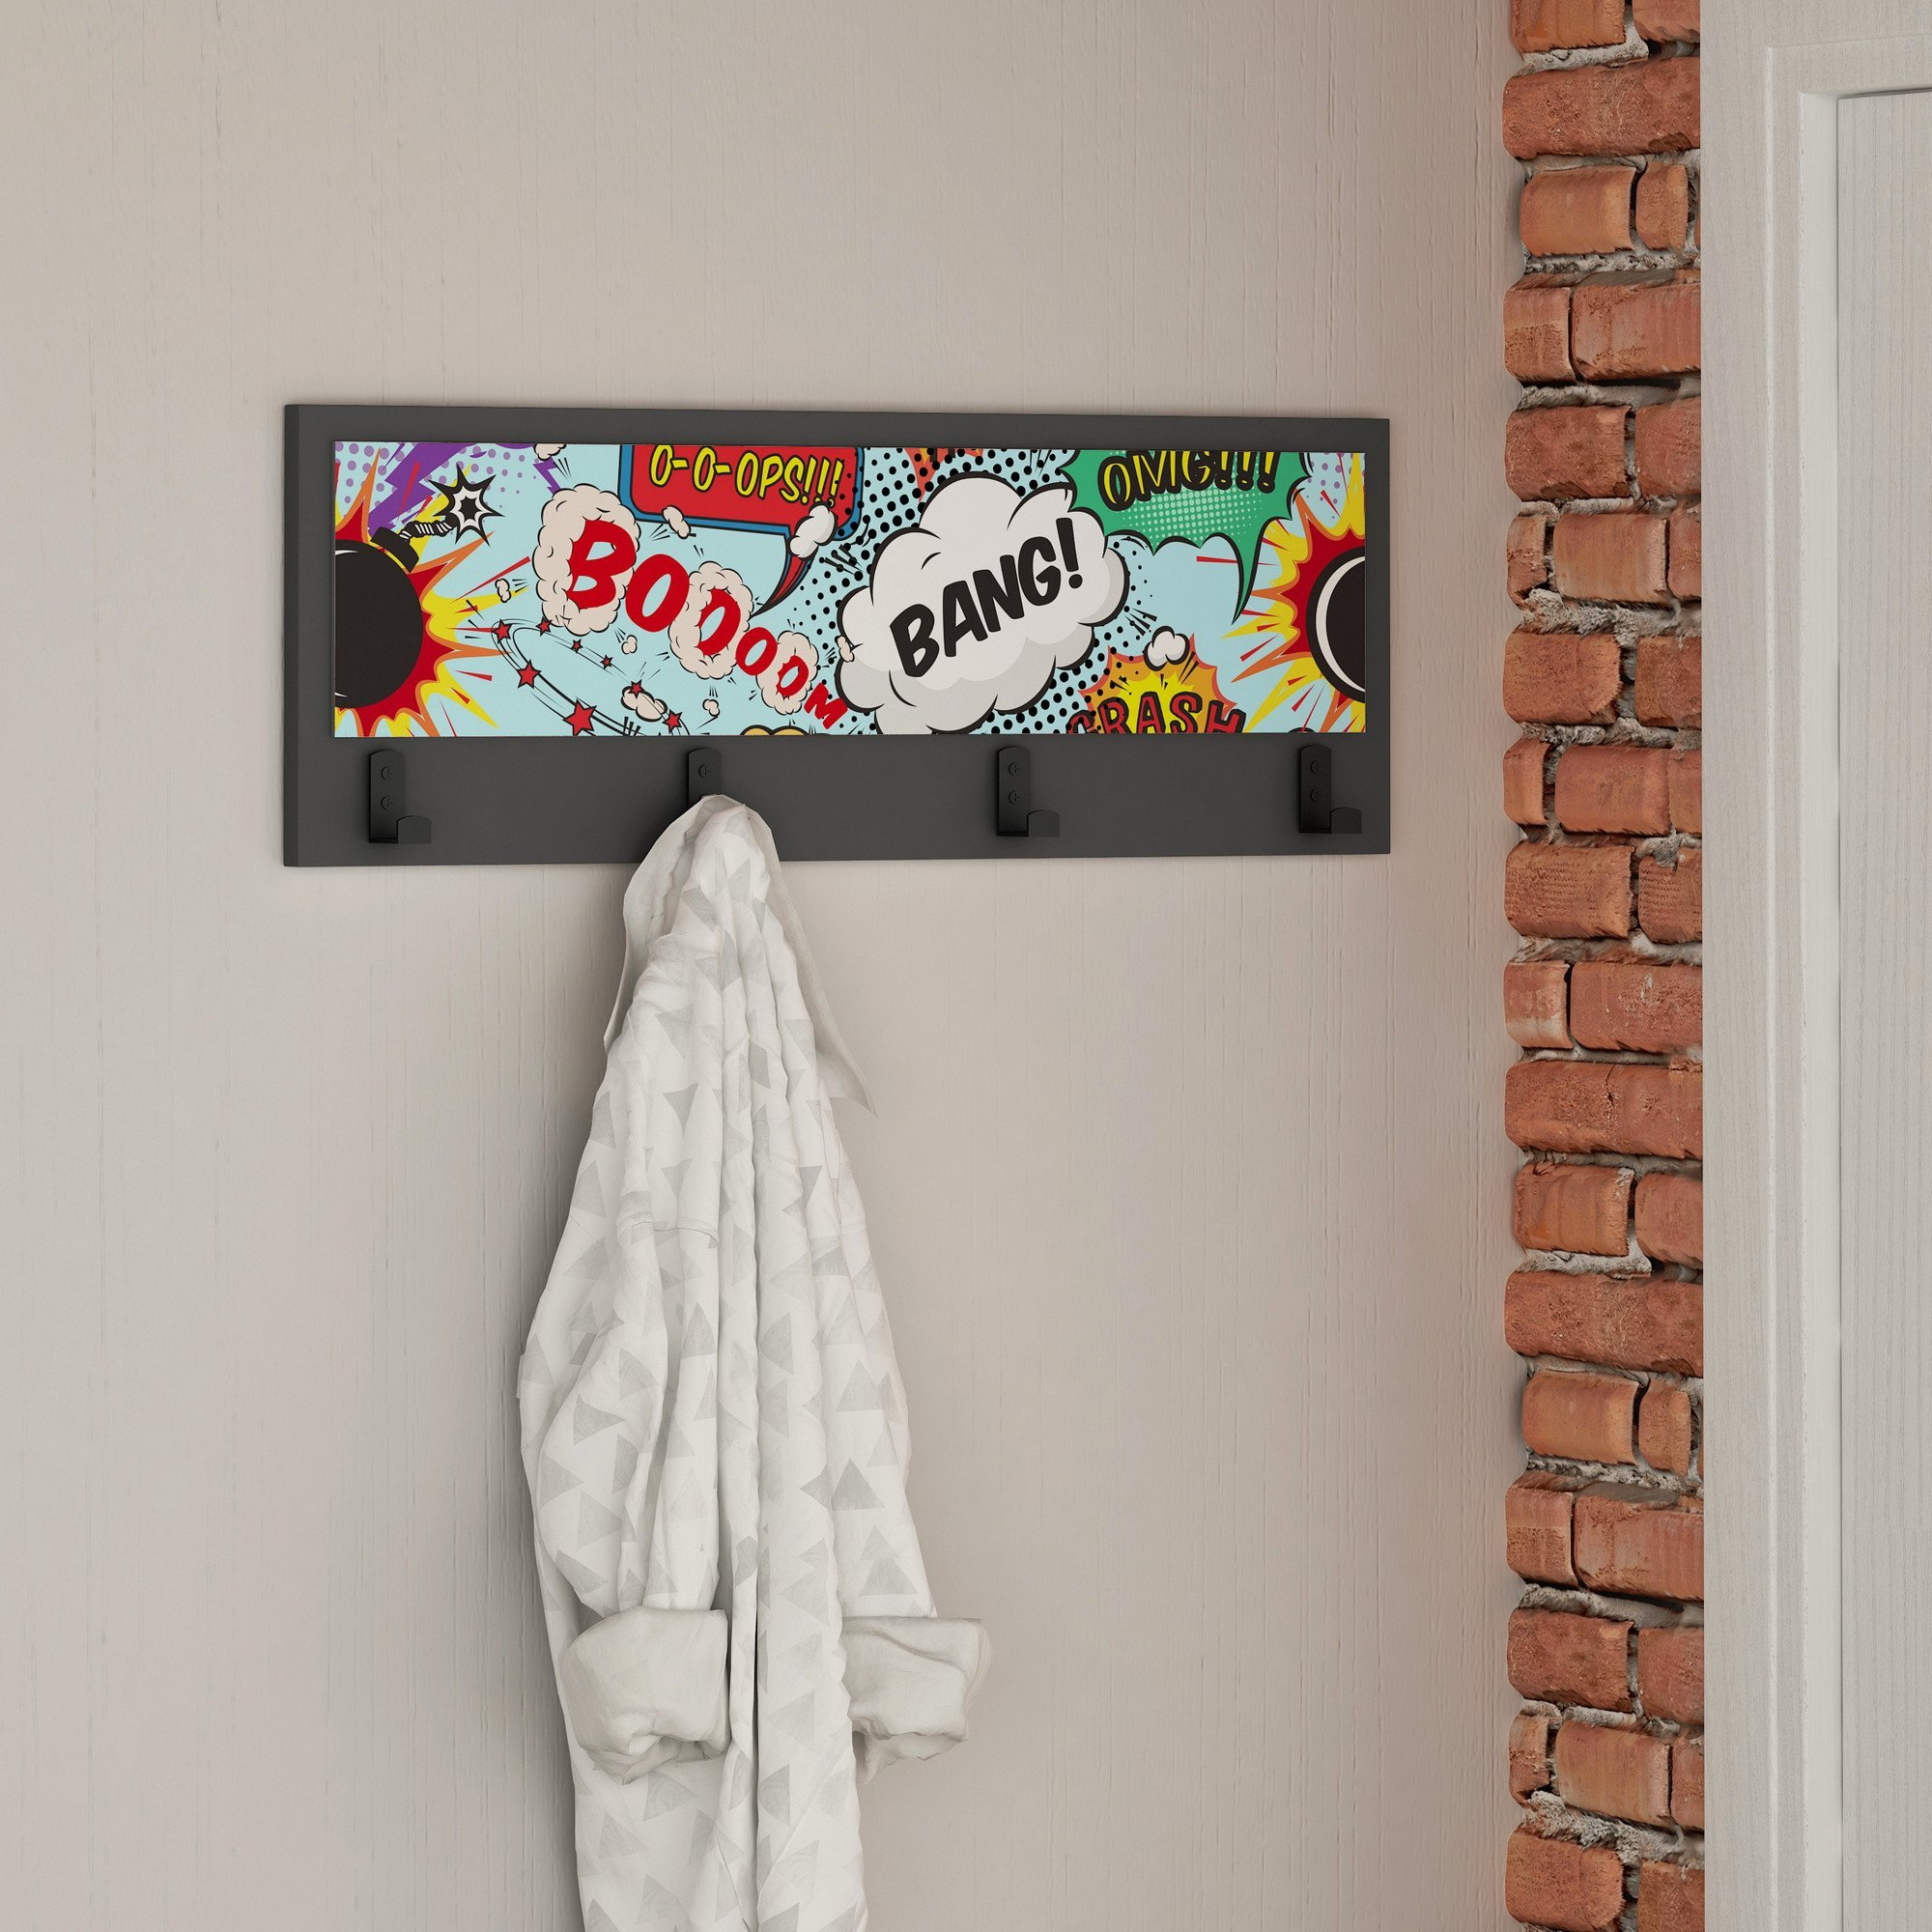 Decorative Wall Hook, 100% Melamine Coated Particle Board - Super Hero Beating Voices, Boooom Bang O-O-Ops - Size (9.8'' x 27.6'' x 1.6'') Wall Hanging Home Decor - Perfect for Home & Office, Foyers